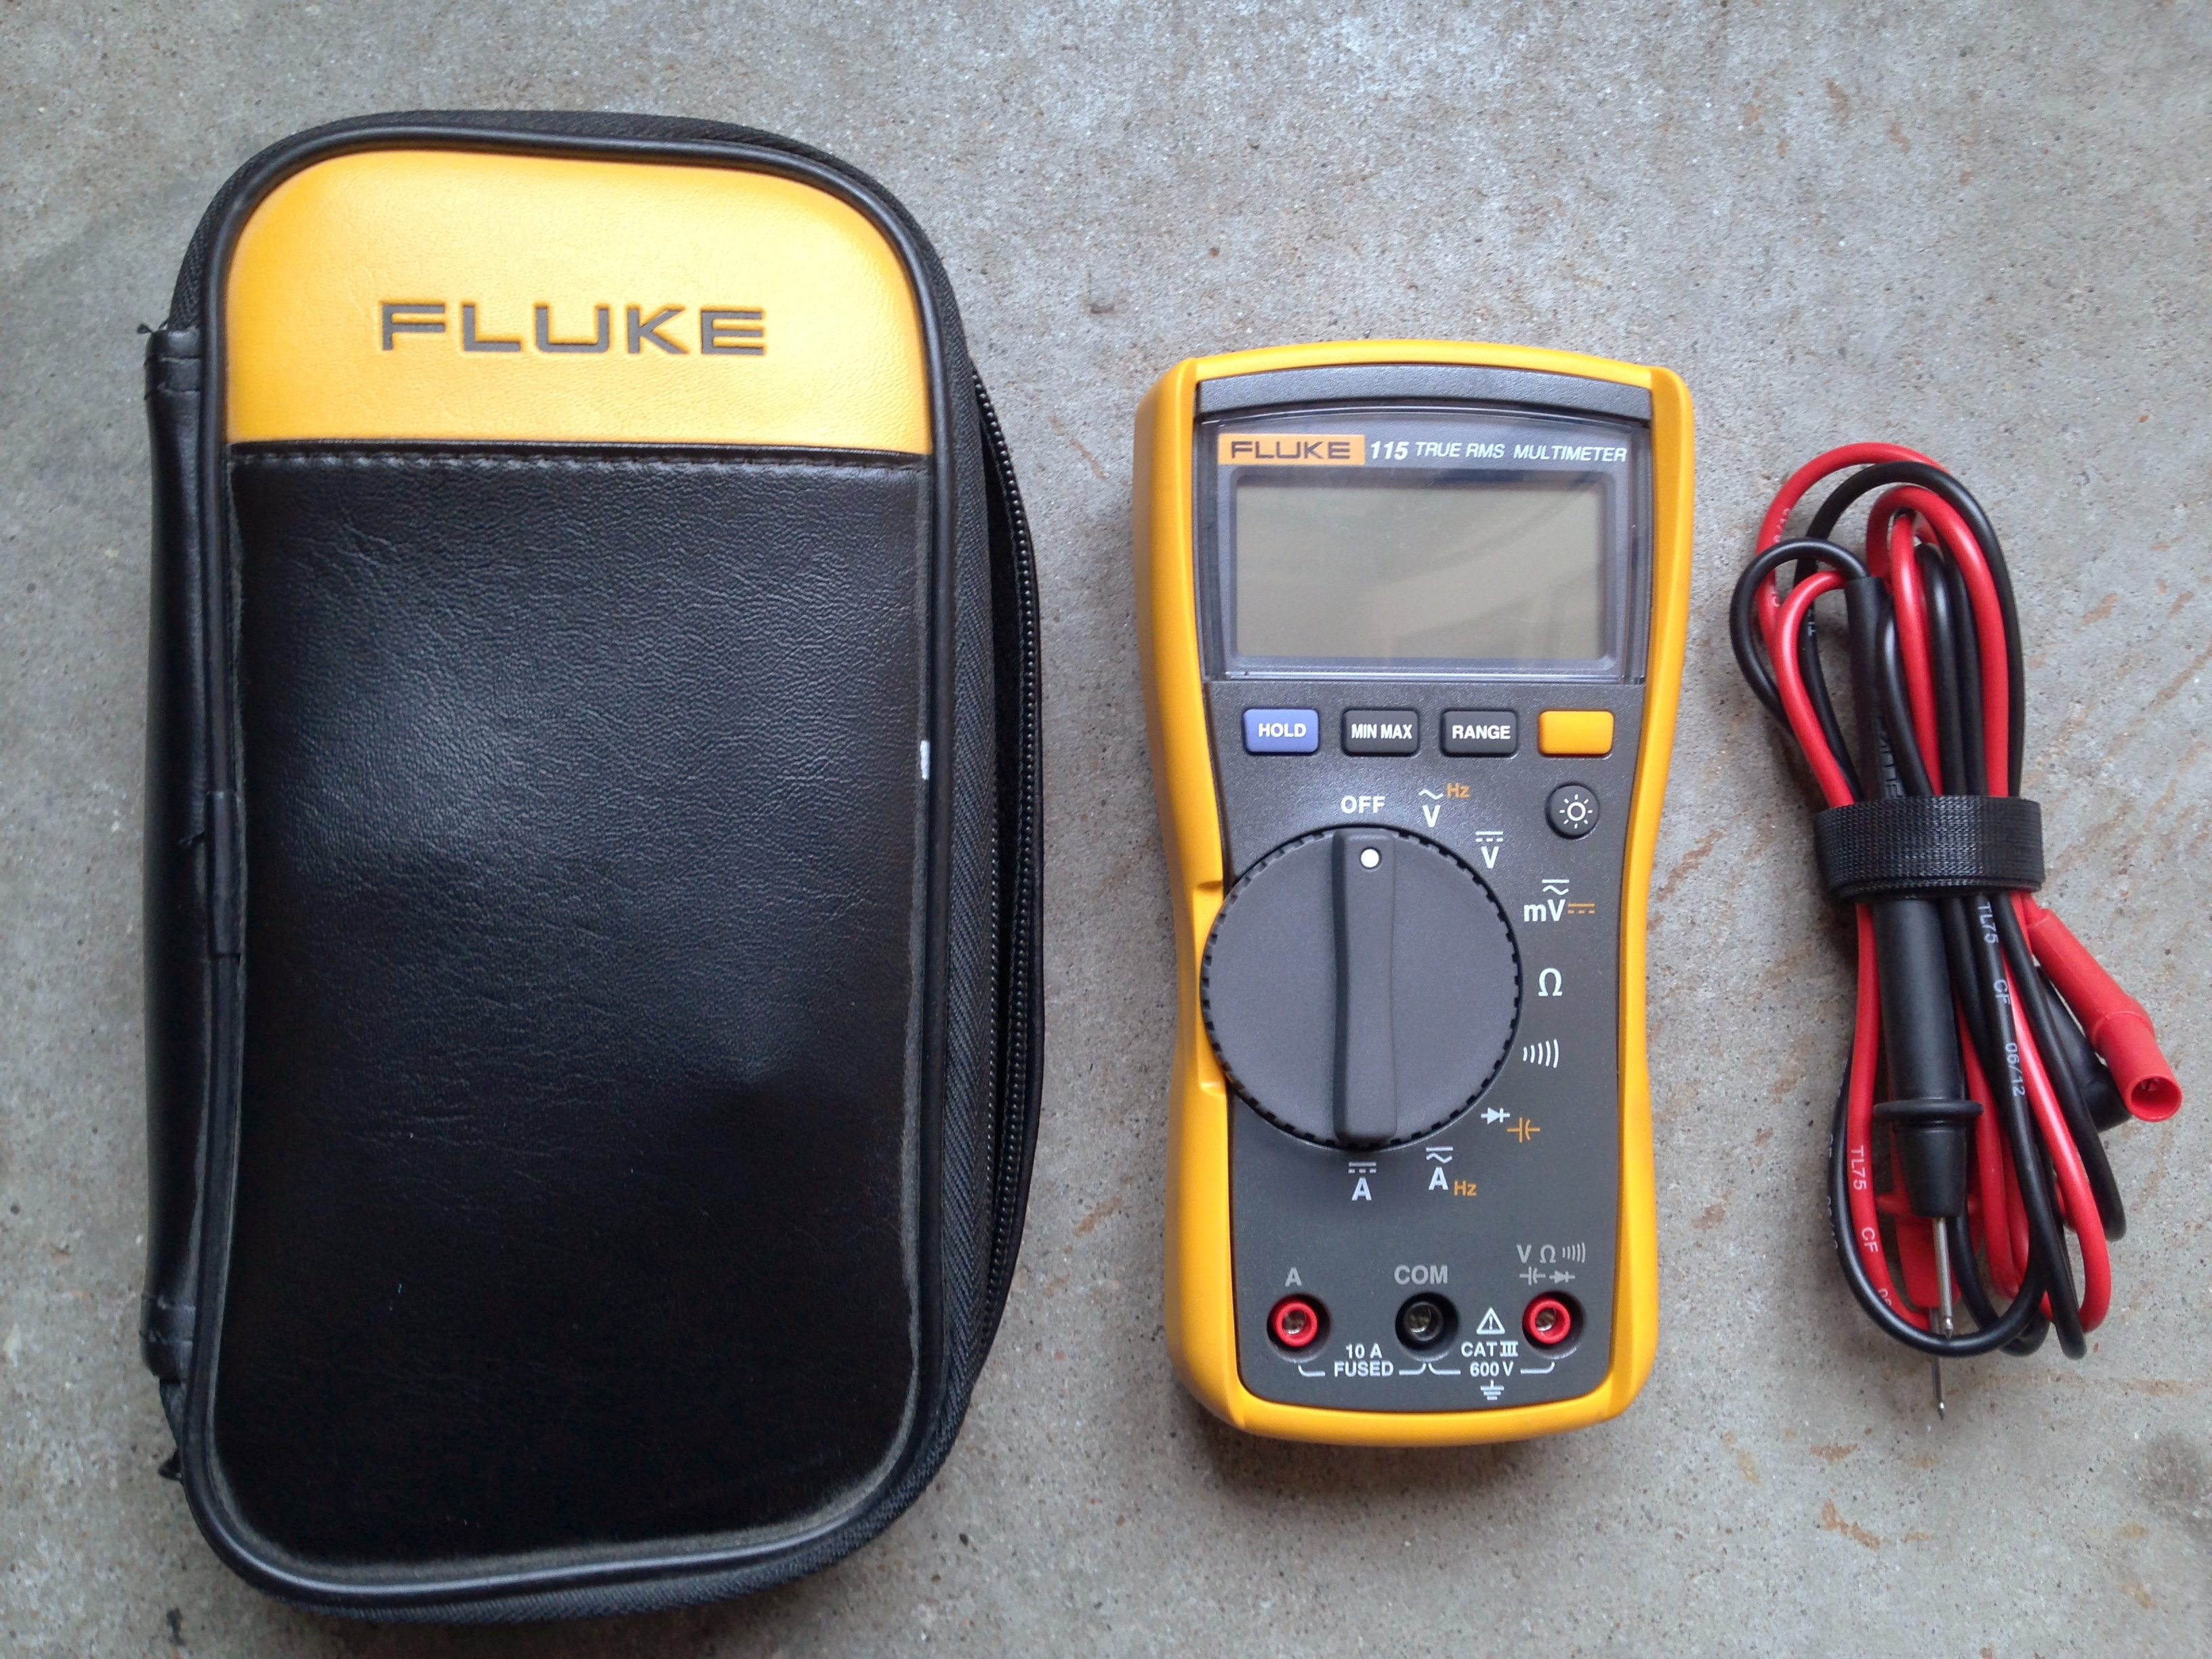 Fluke 115 Multimeter : File fluke multimeter with case and leads g wikipedia